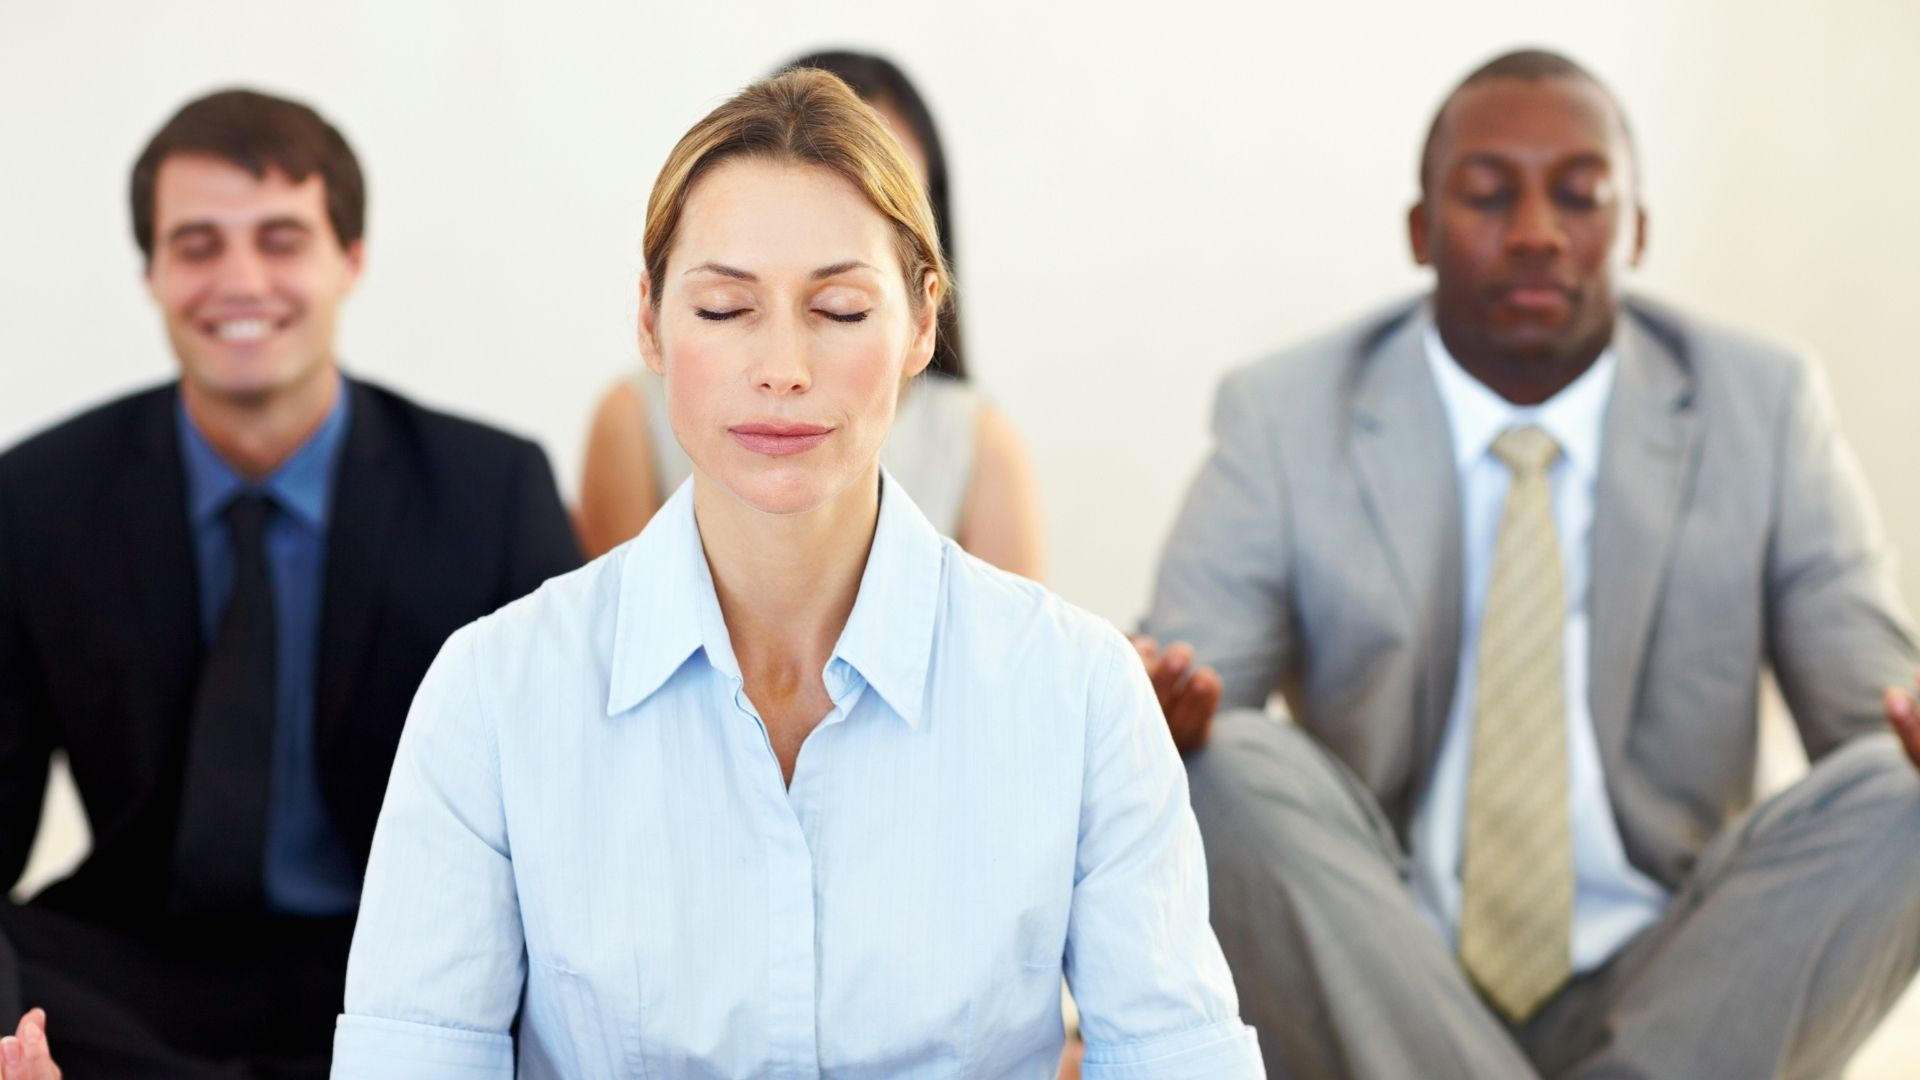 RHA Course - Meditation for Busy People